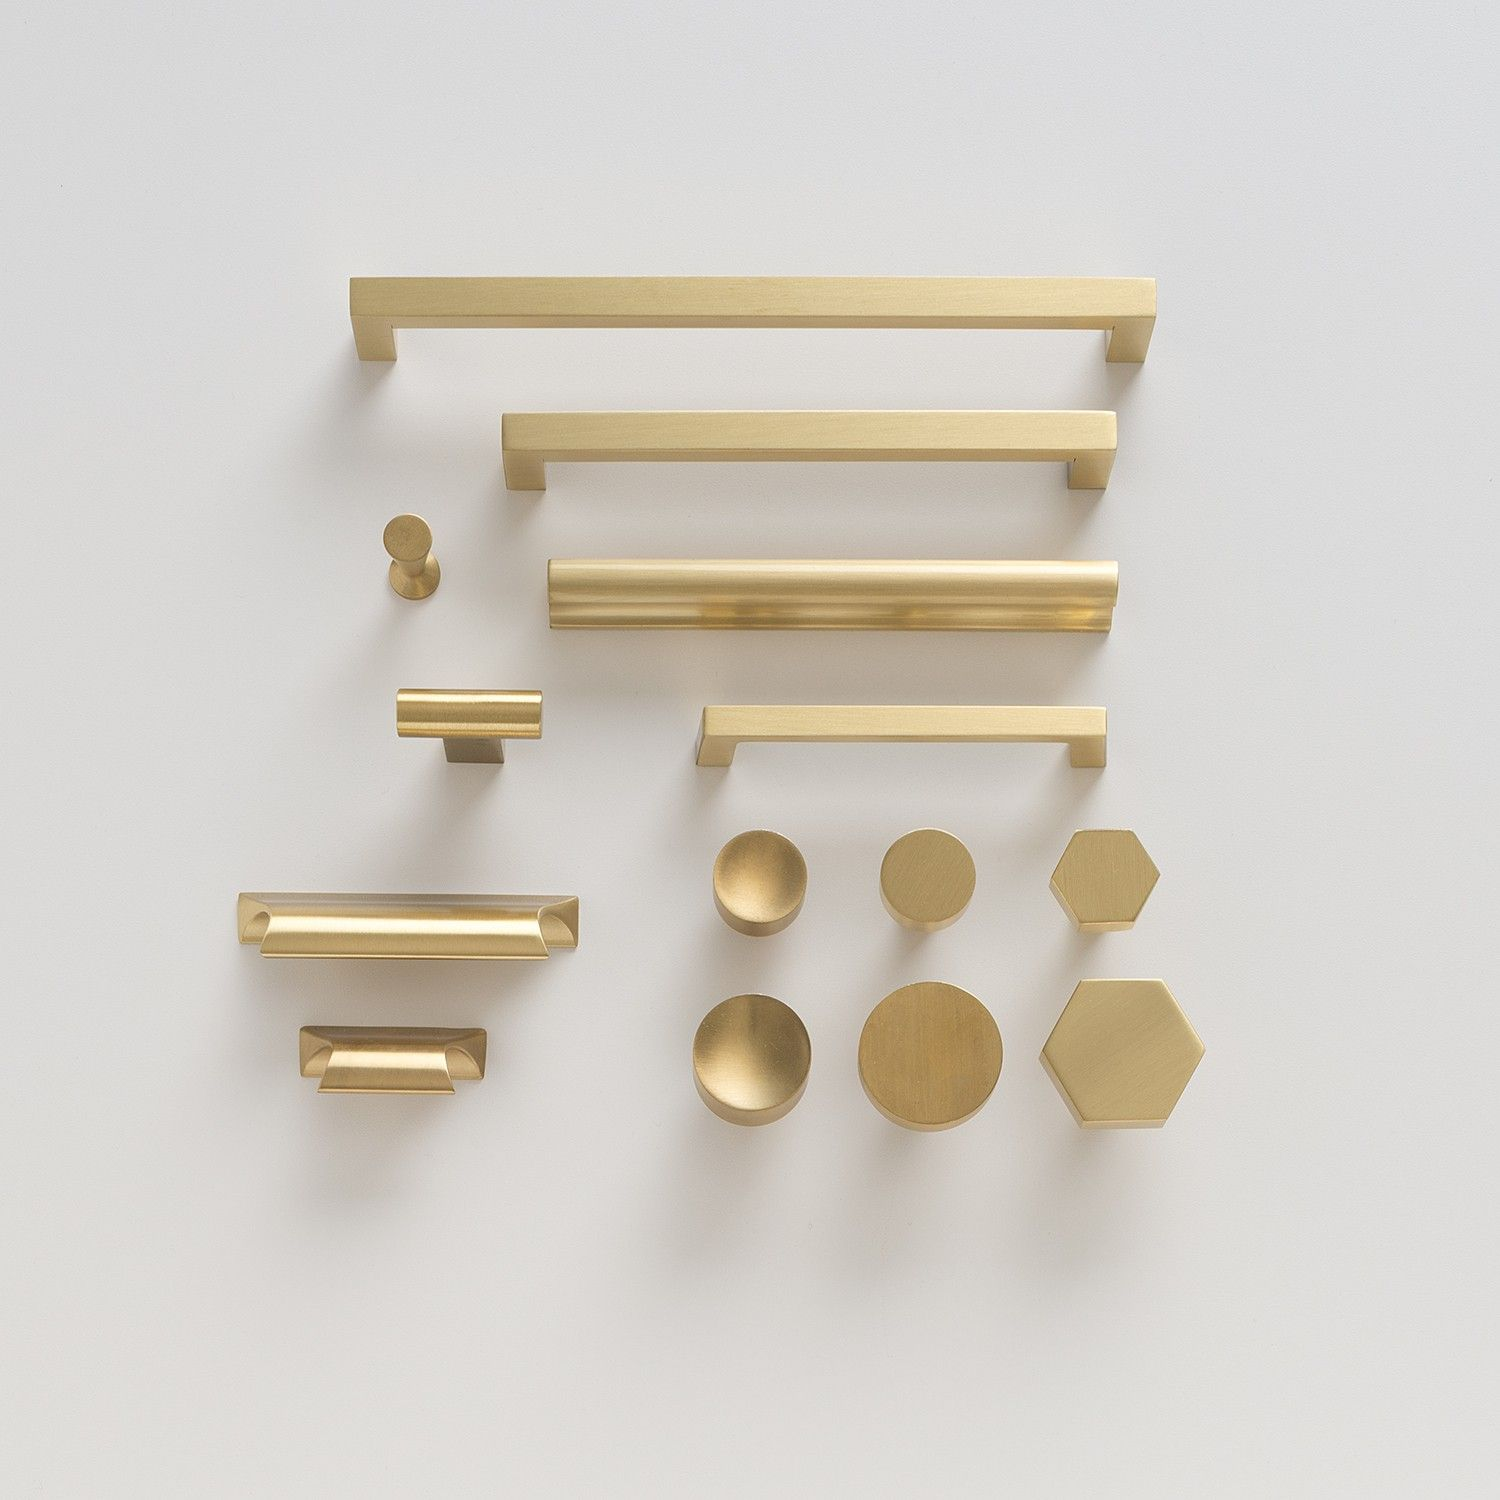 Kitchen Pulls And Knobs Appliances Installation Service Spotlight Solid Brass Hardware Home Upgrade Pinterest Edgecliff Pull Natural Drawer These For The